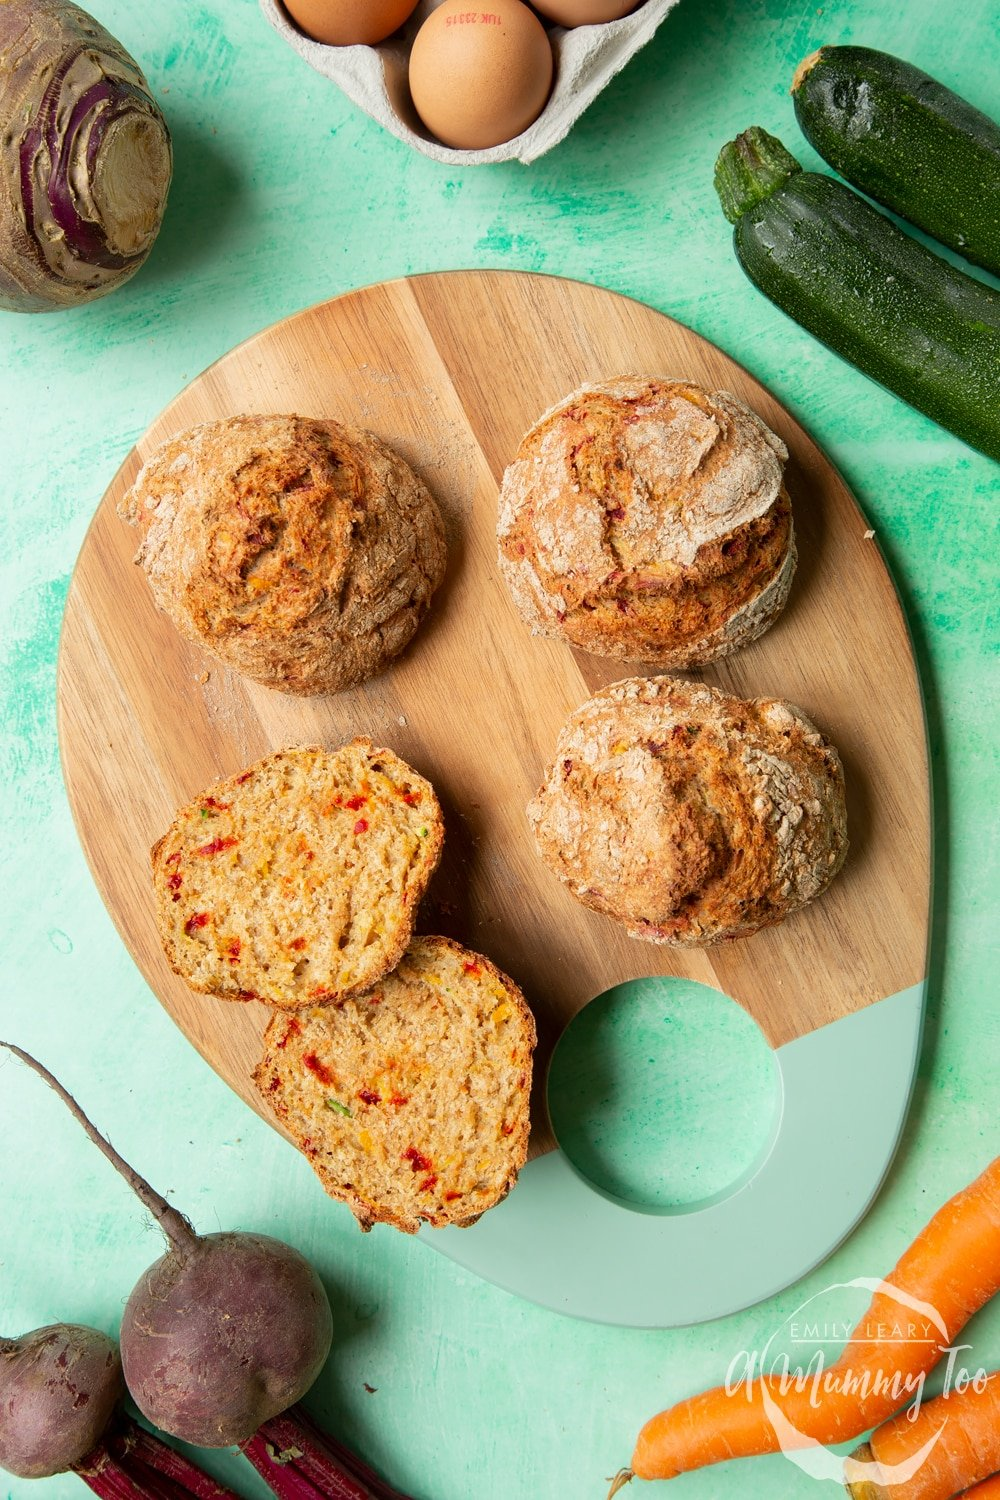 Vegetable soda bread rolls recipe - rolls arranged on a board, one cut open to show the vegetable flecked interior.